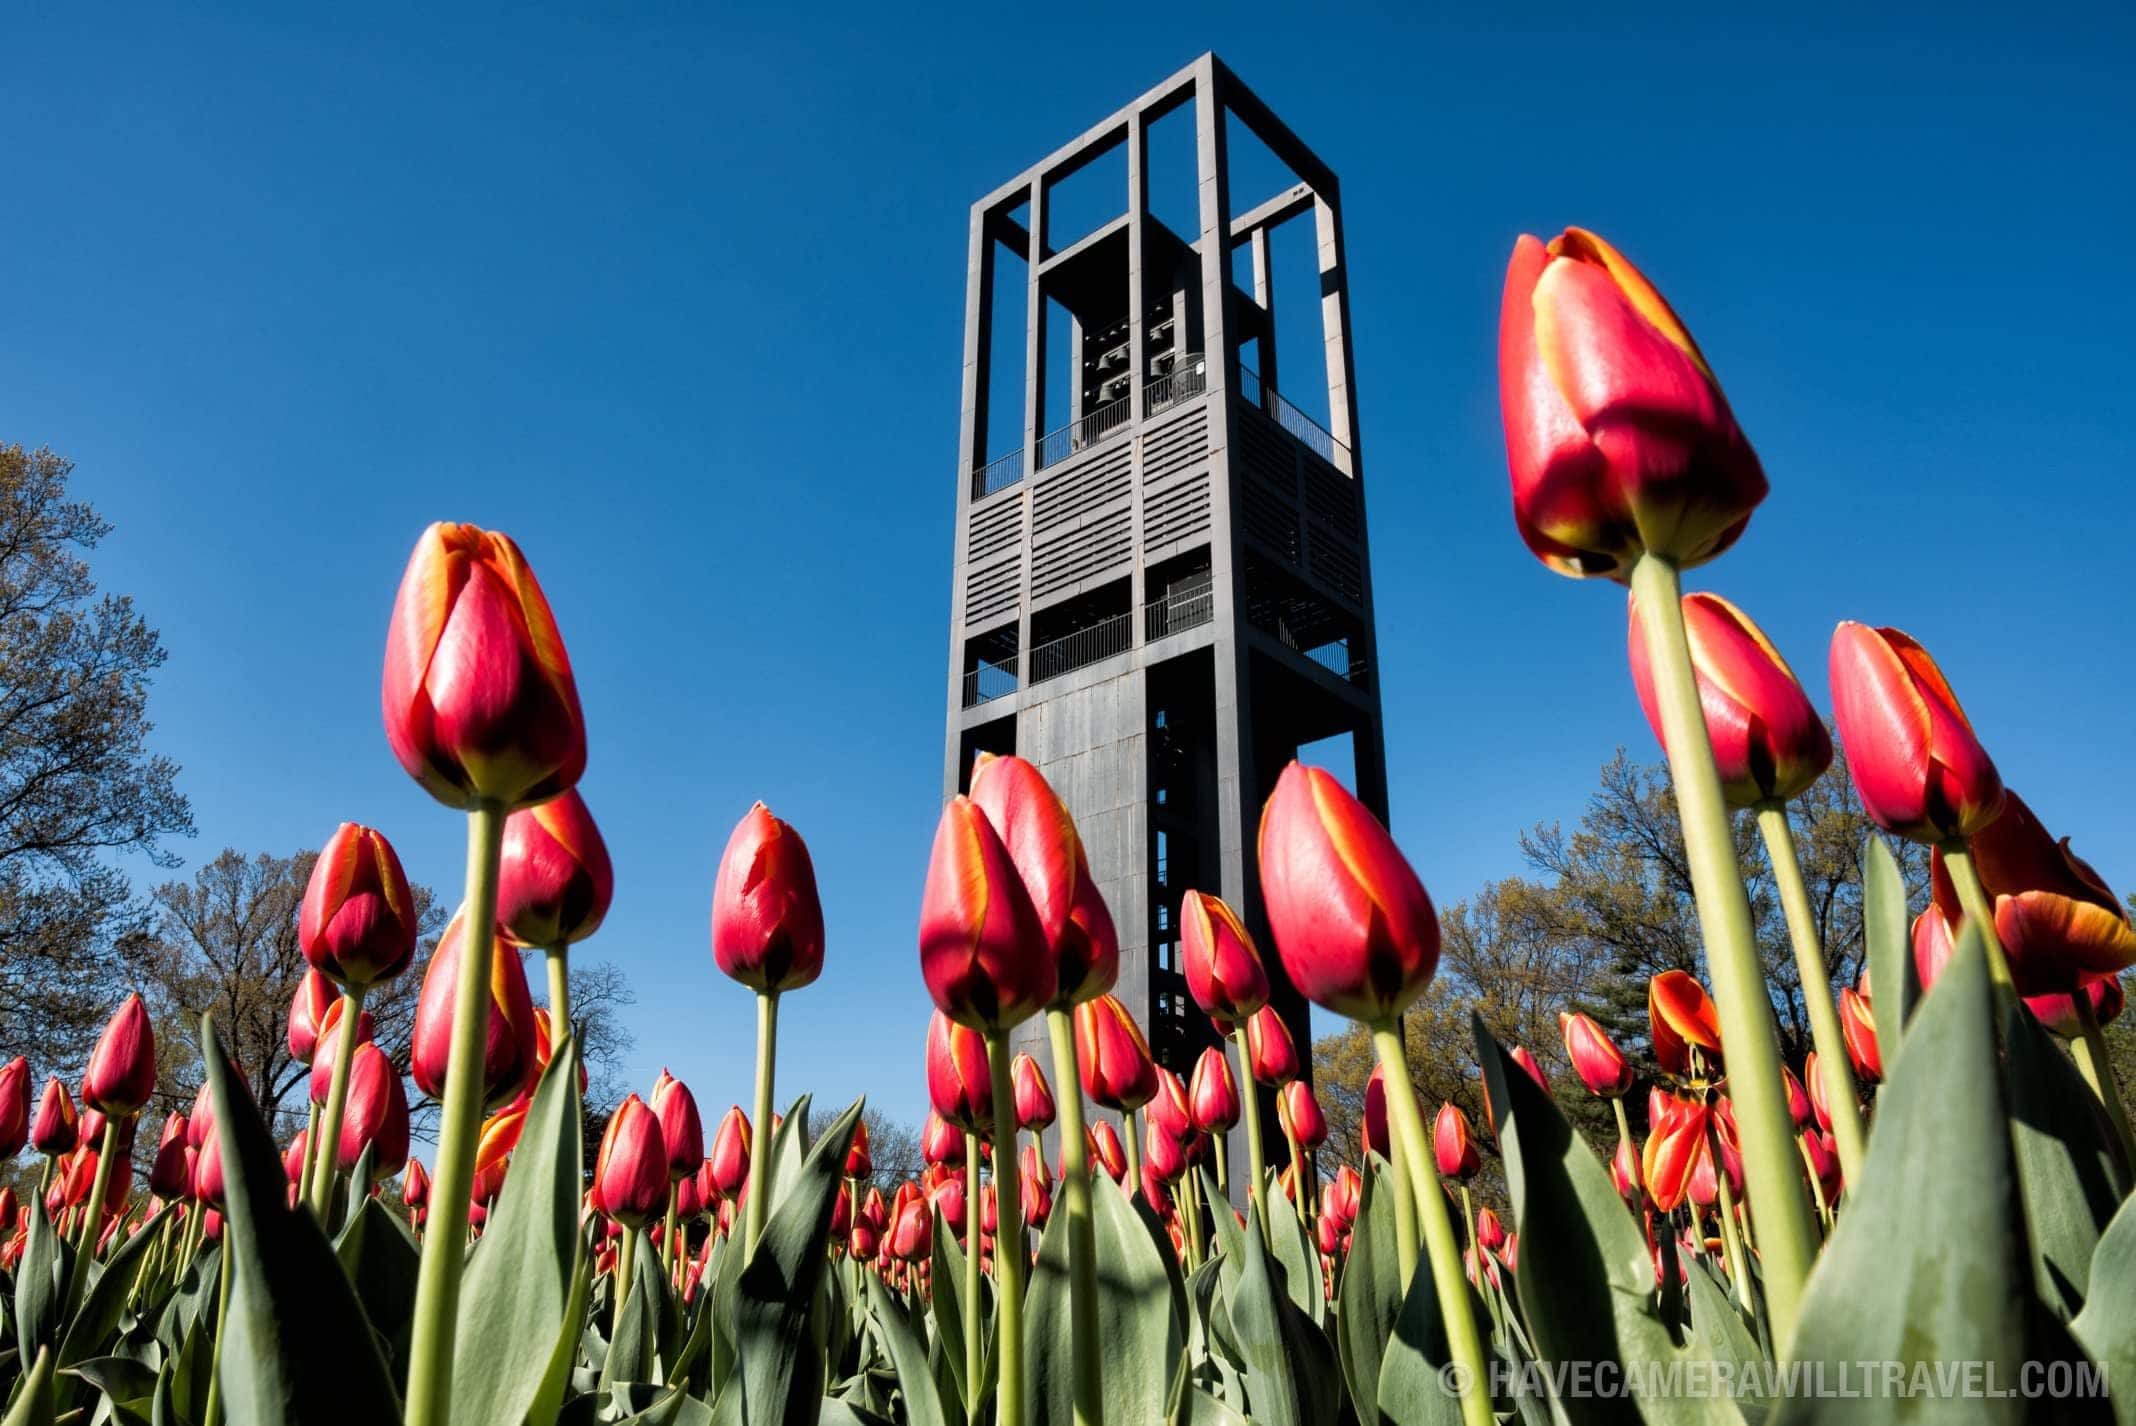 Netherlands Carillon in Arlington, Virginia, with Tulips